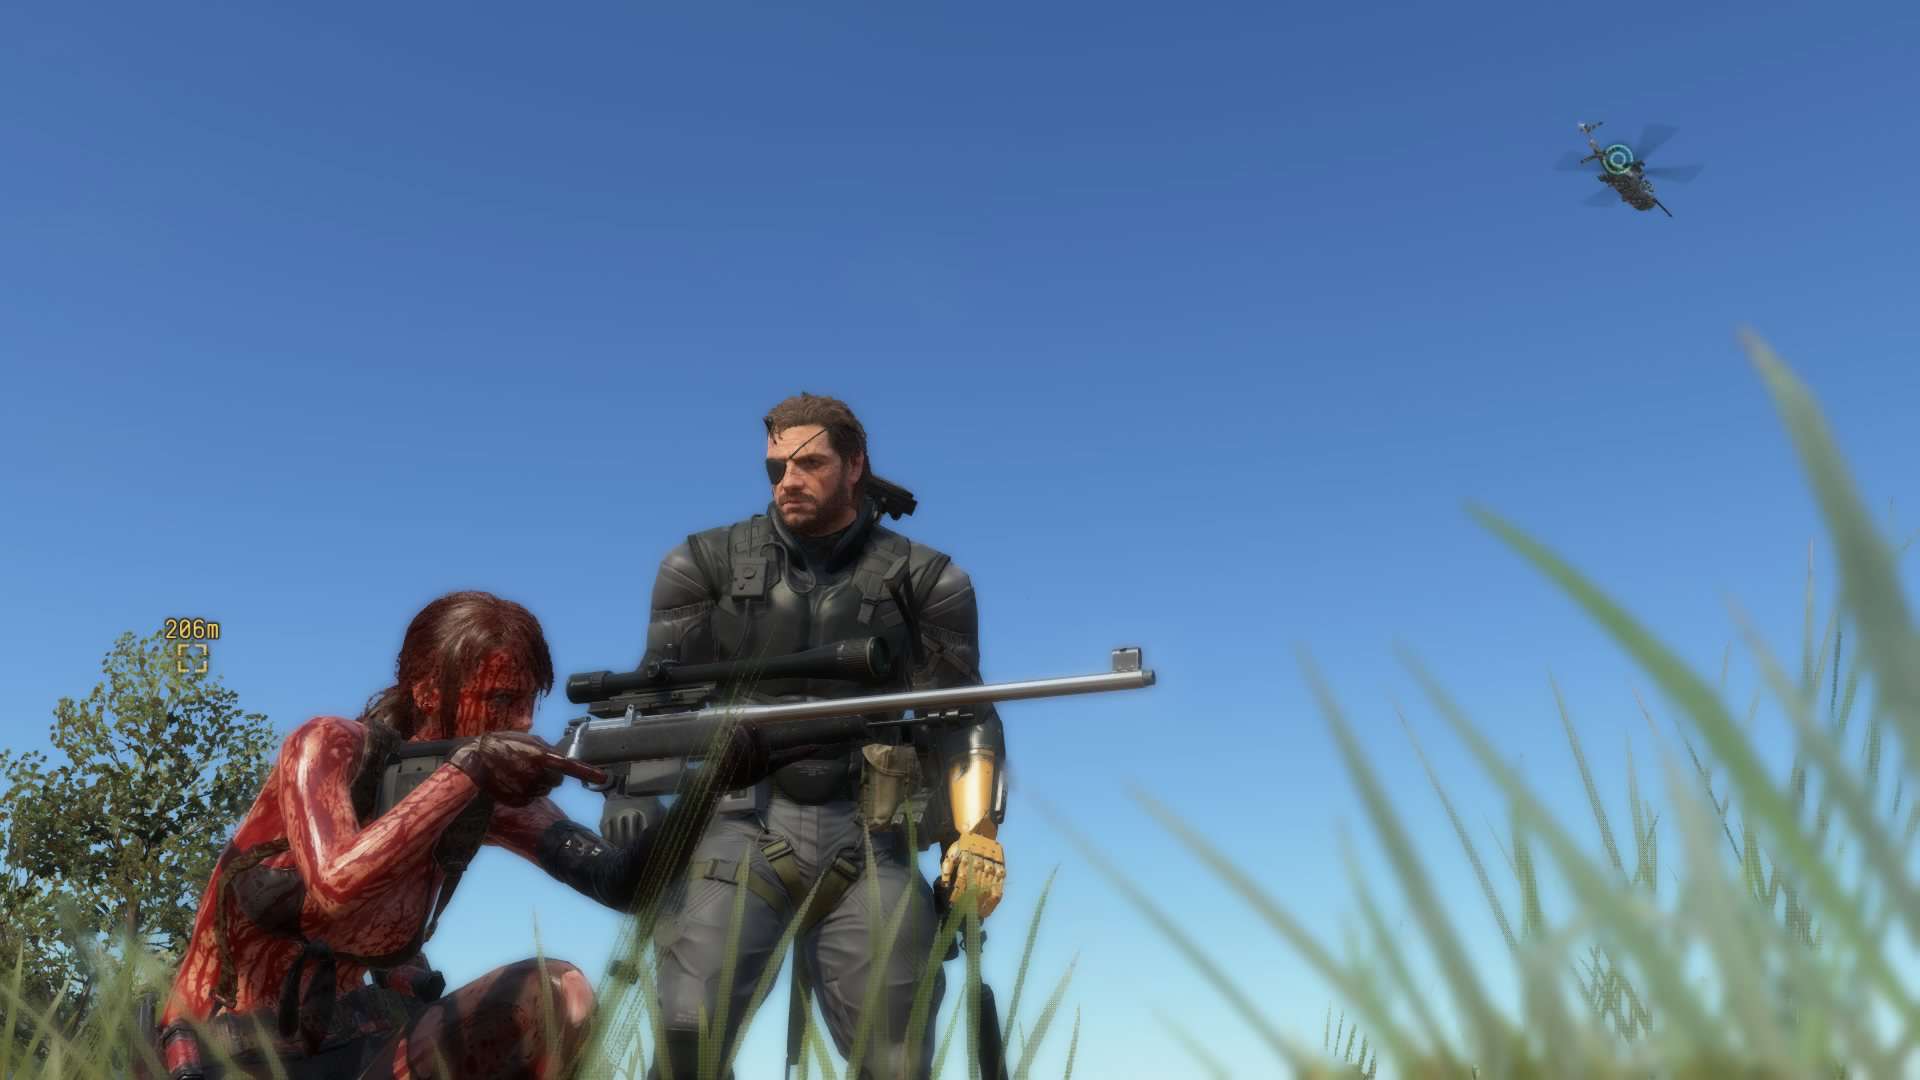 Metal-Gear-Solid-V-The-Phantom-Pain-Bloody-Quiet-Snake